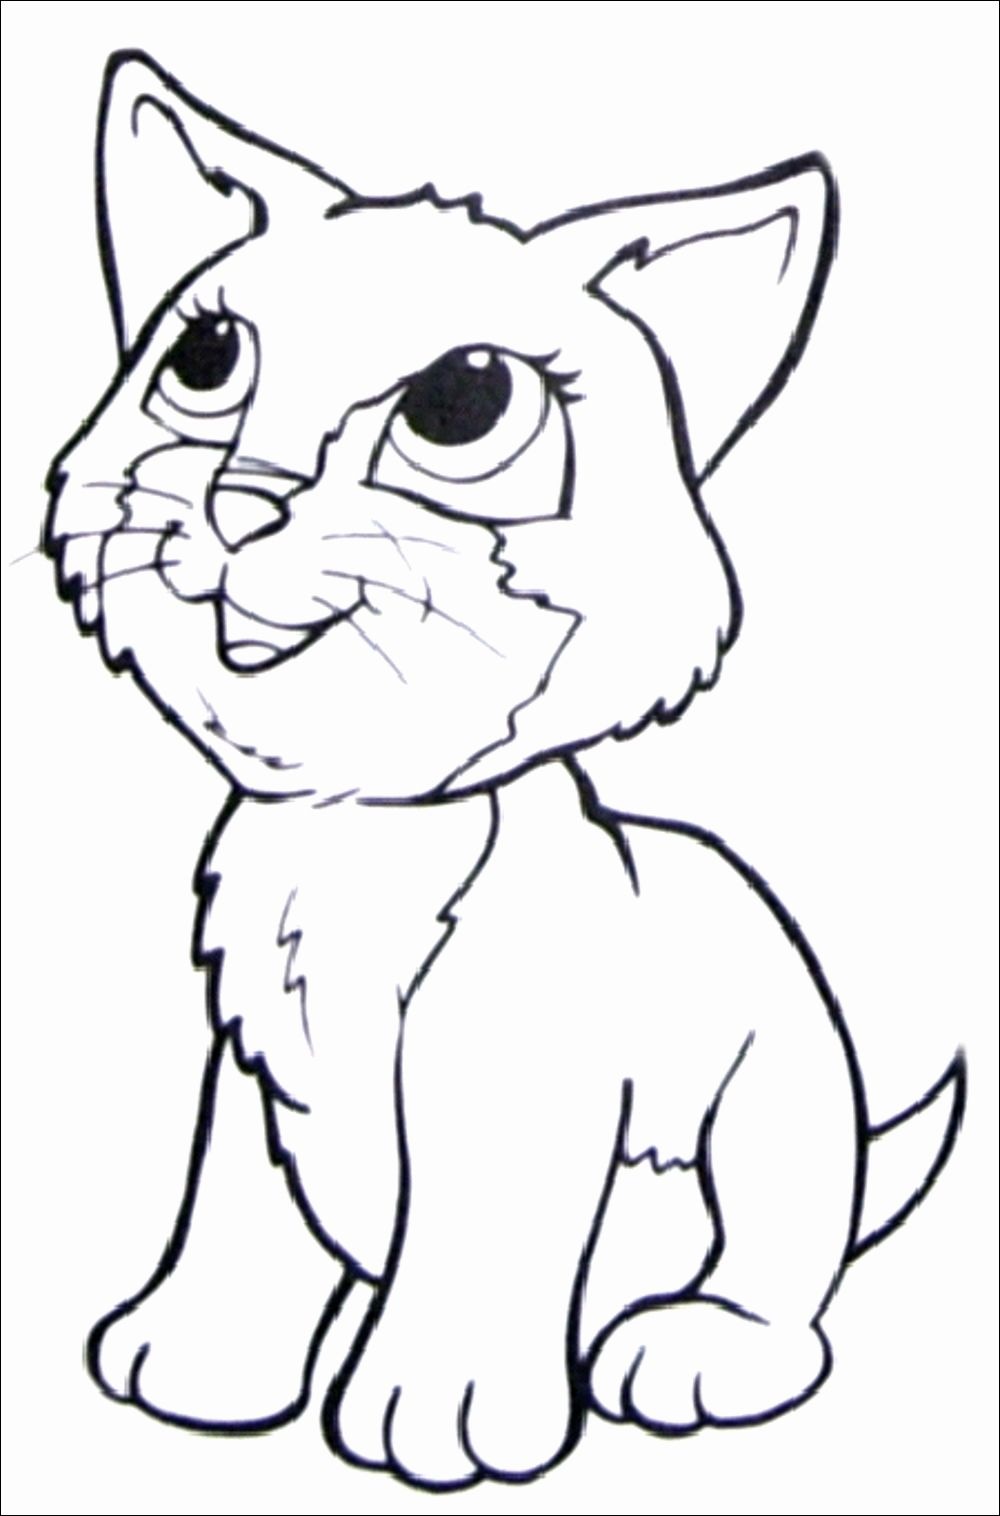 Cat Coloring Pages Kids In 2020 Kitty Coloring Cat Coloring Book Dog Coloring Book